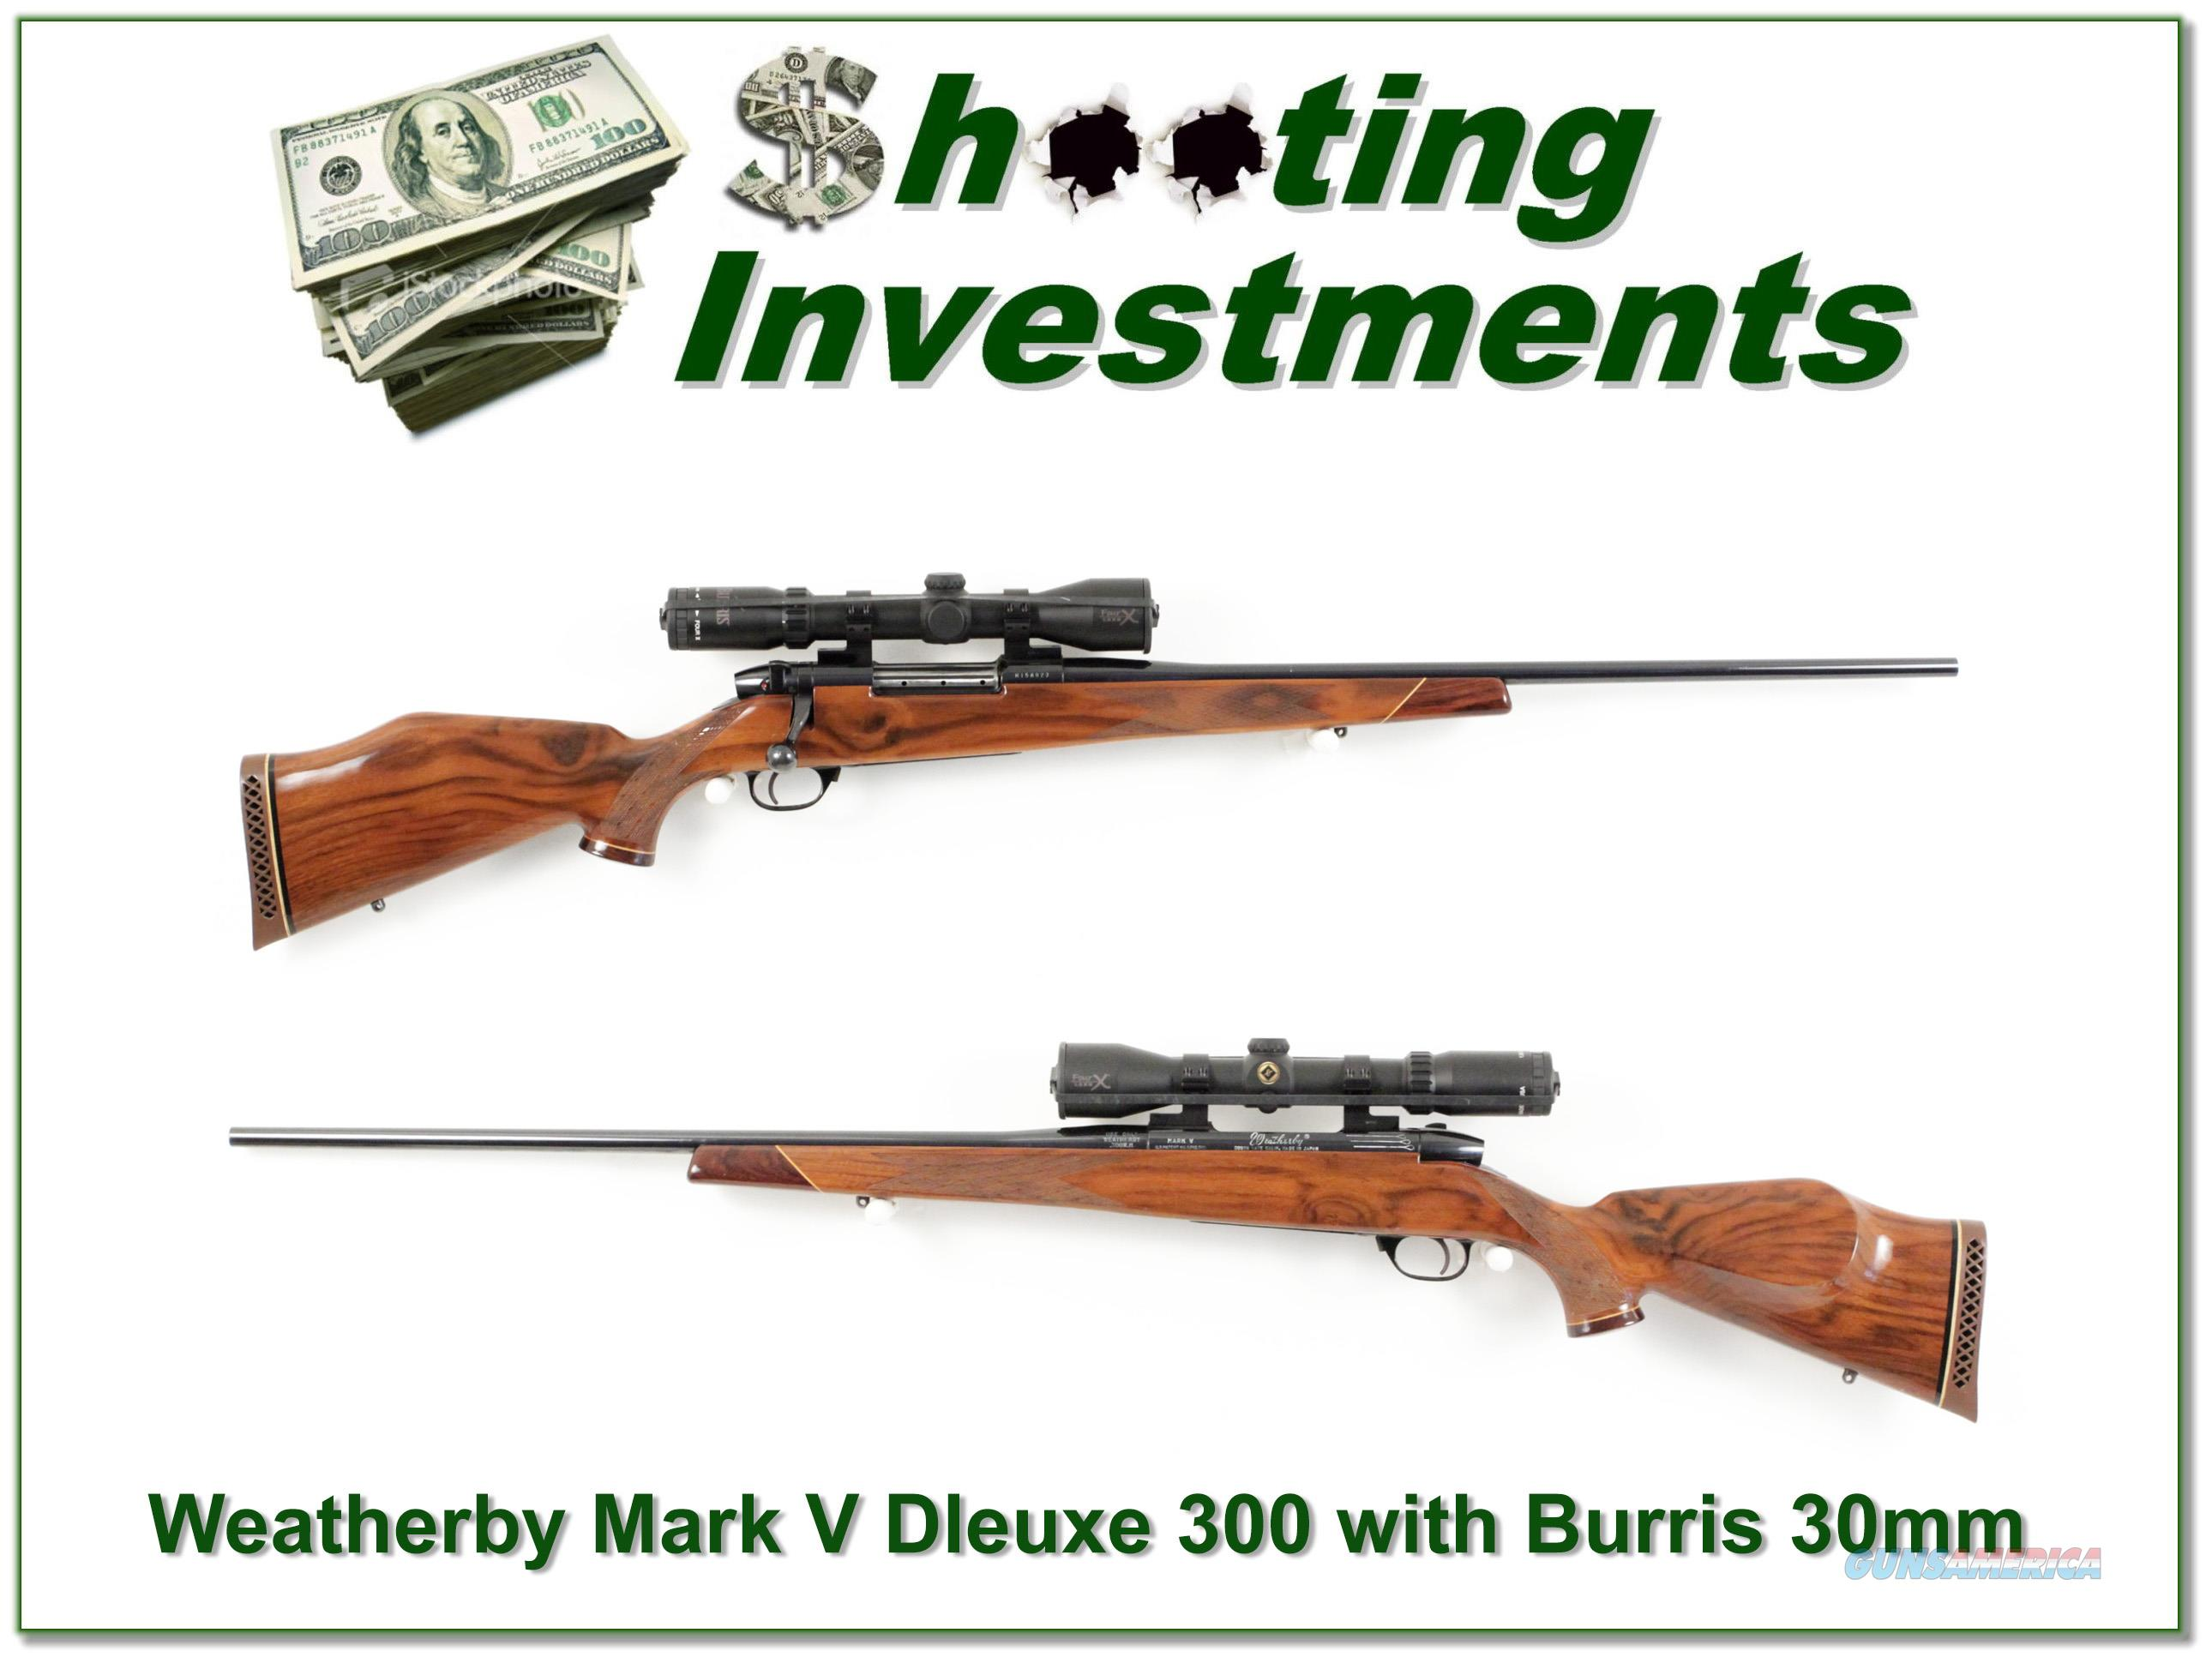 Weatherby Mark V Deluxe 300 with 30mm Burris   Guns > Rifles > Weatherby Rifles > Sporting